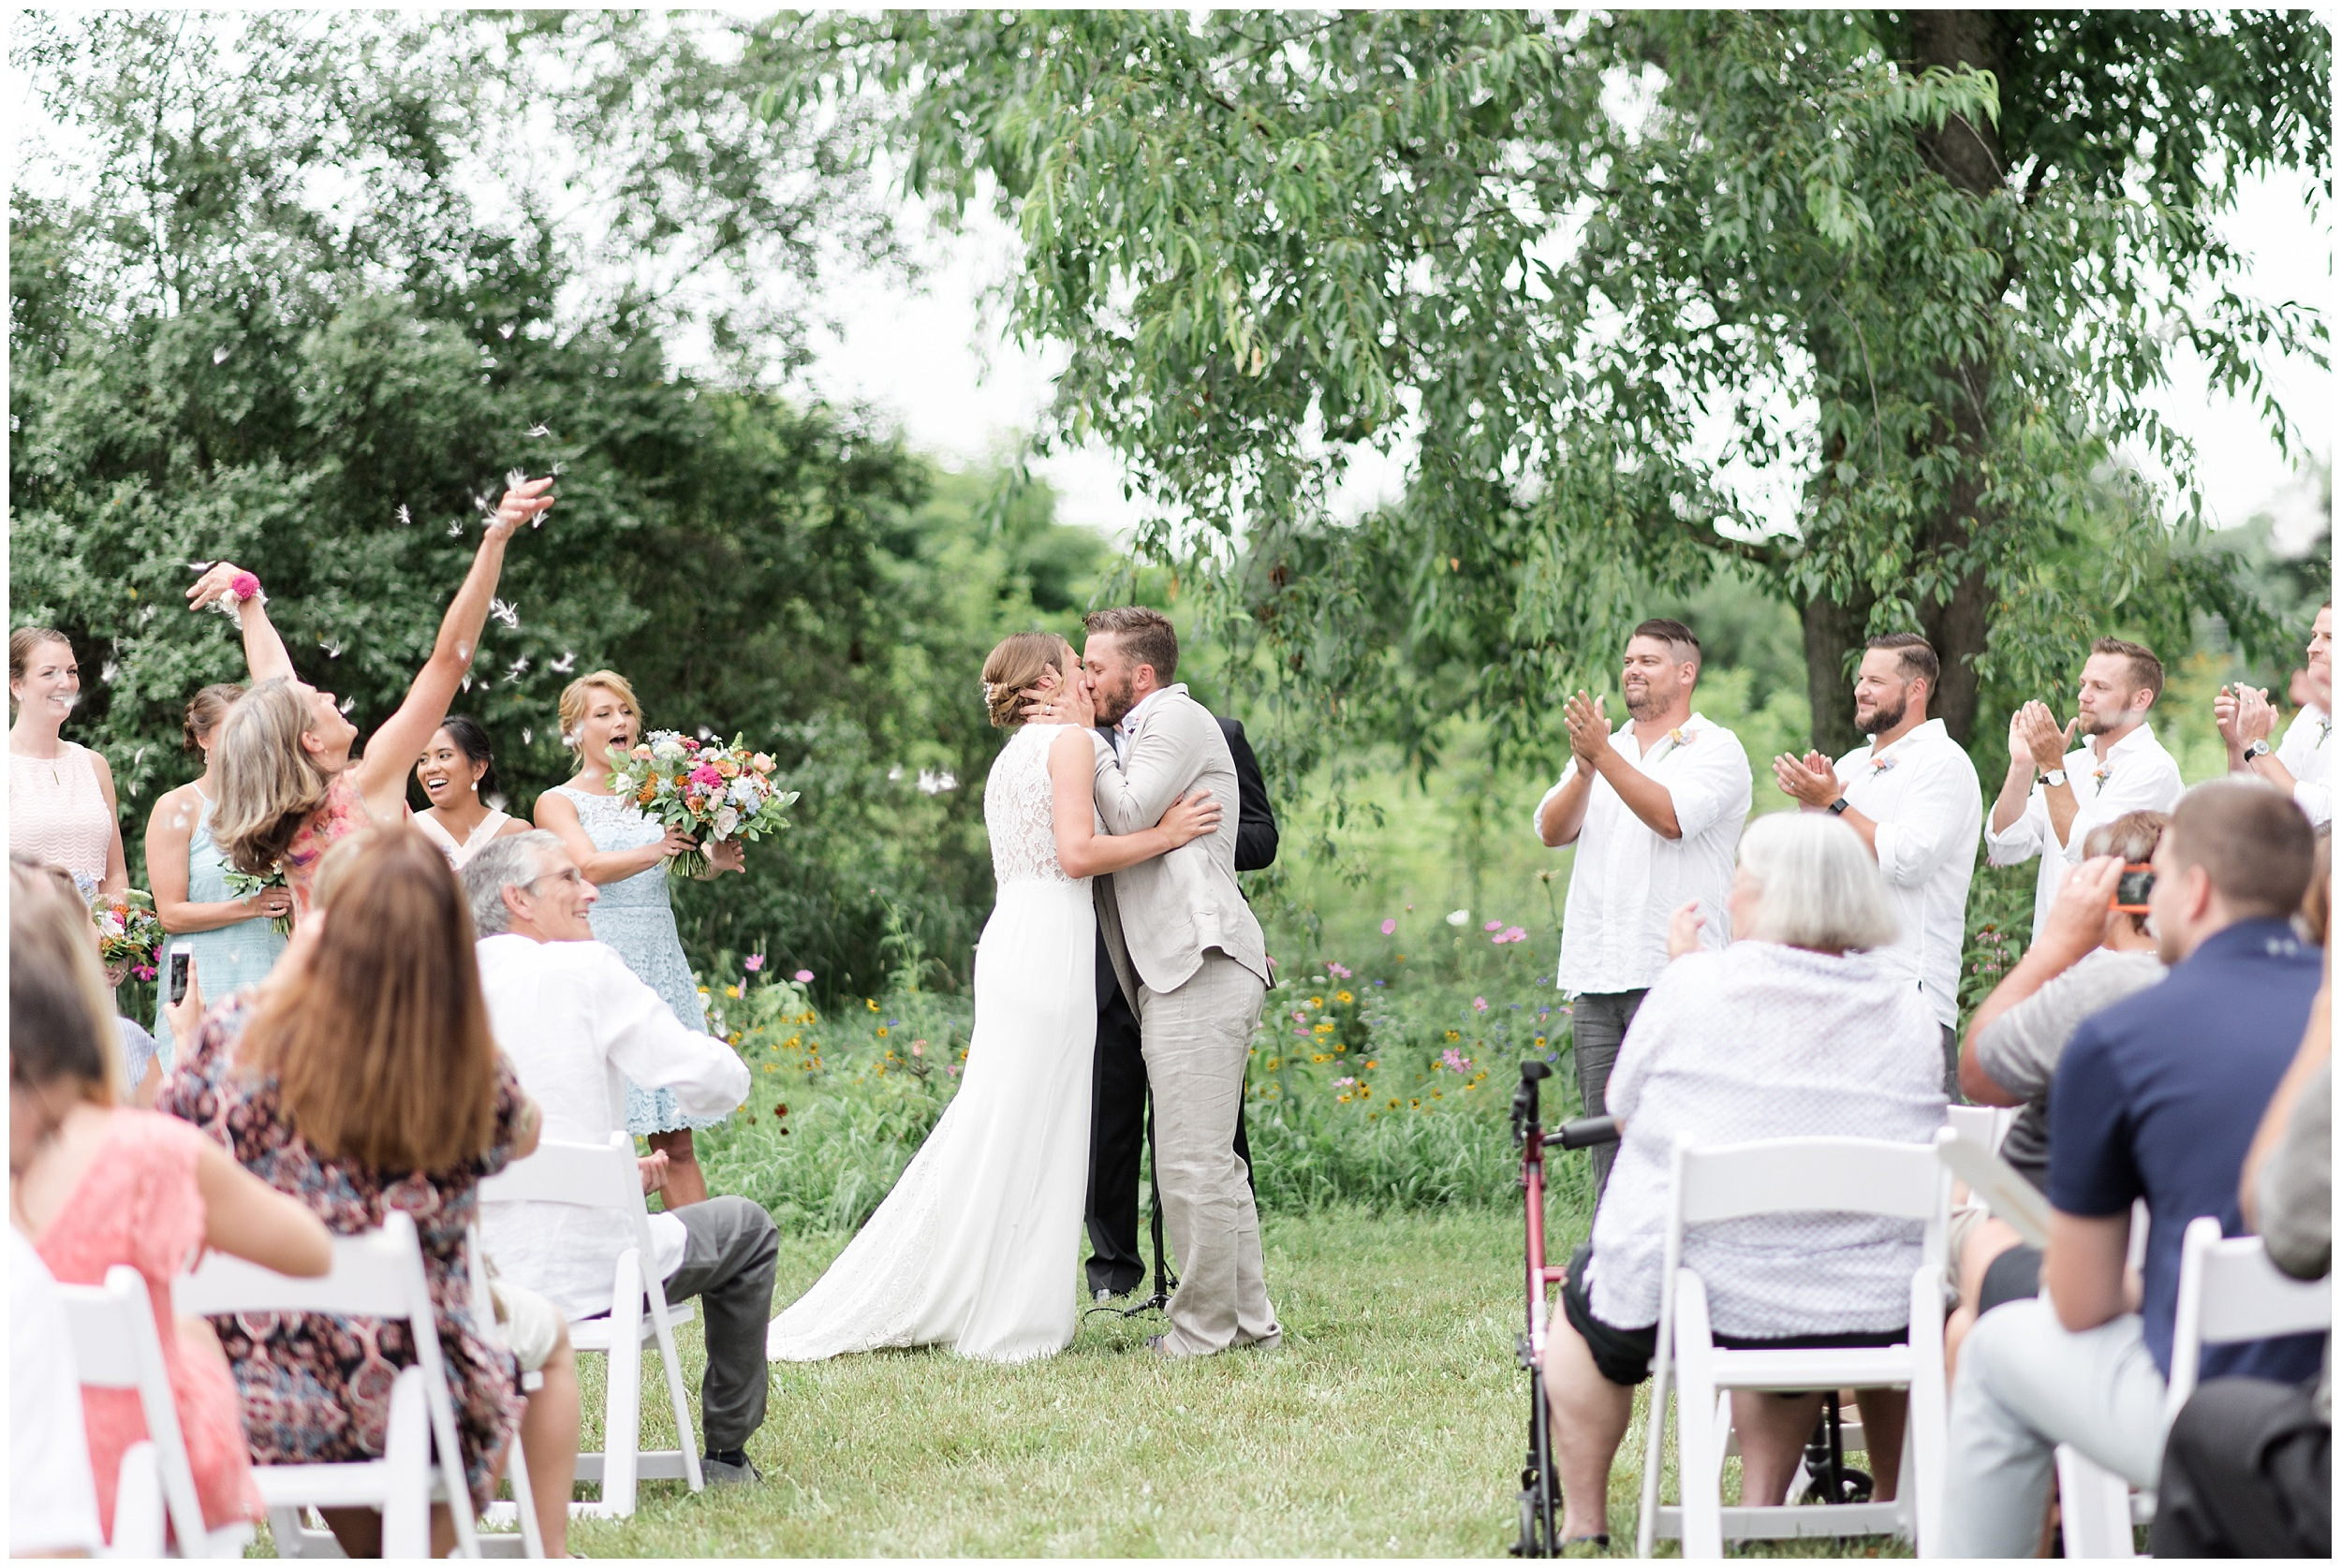 Whimsical-Ethereal-July-Kalamazoo-Wedding-Bright-Airy-Documentary-Milwaukee-Photographer_0040.jpg